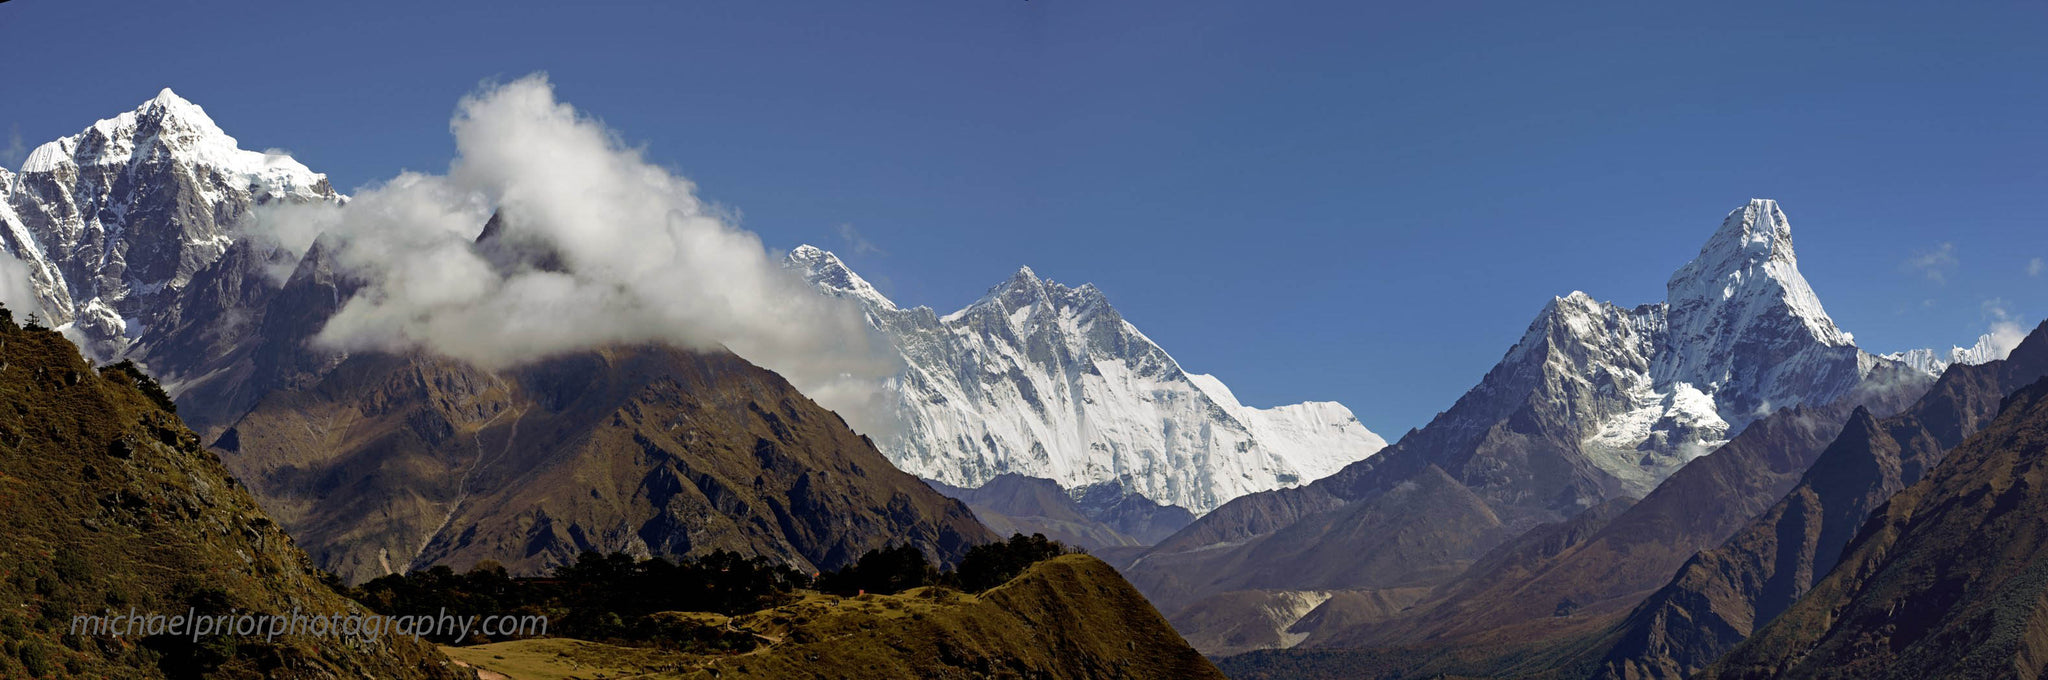 Himayan Panoramic With Mt Everest, Mt Lhotse And Ama Dablam